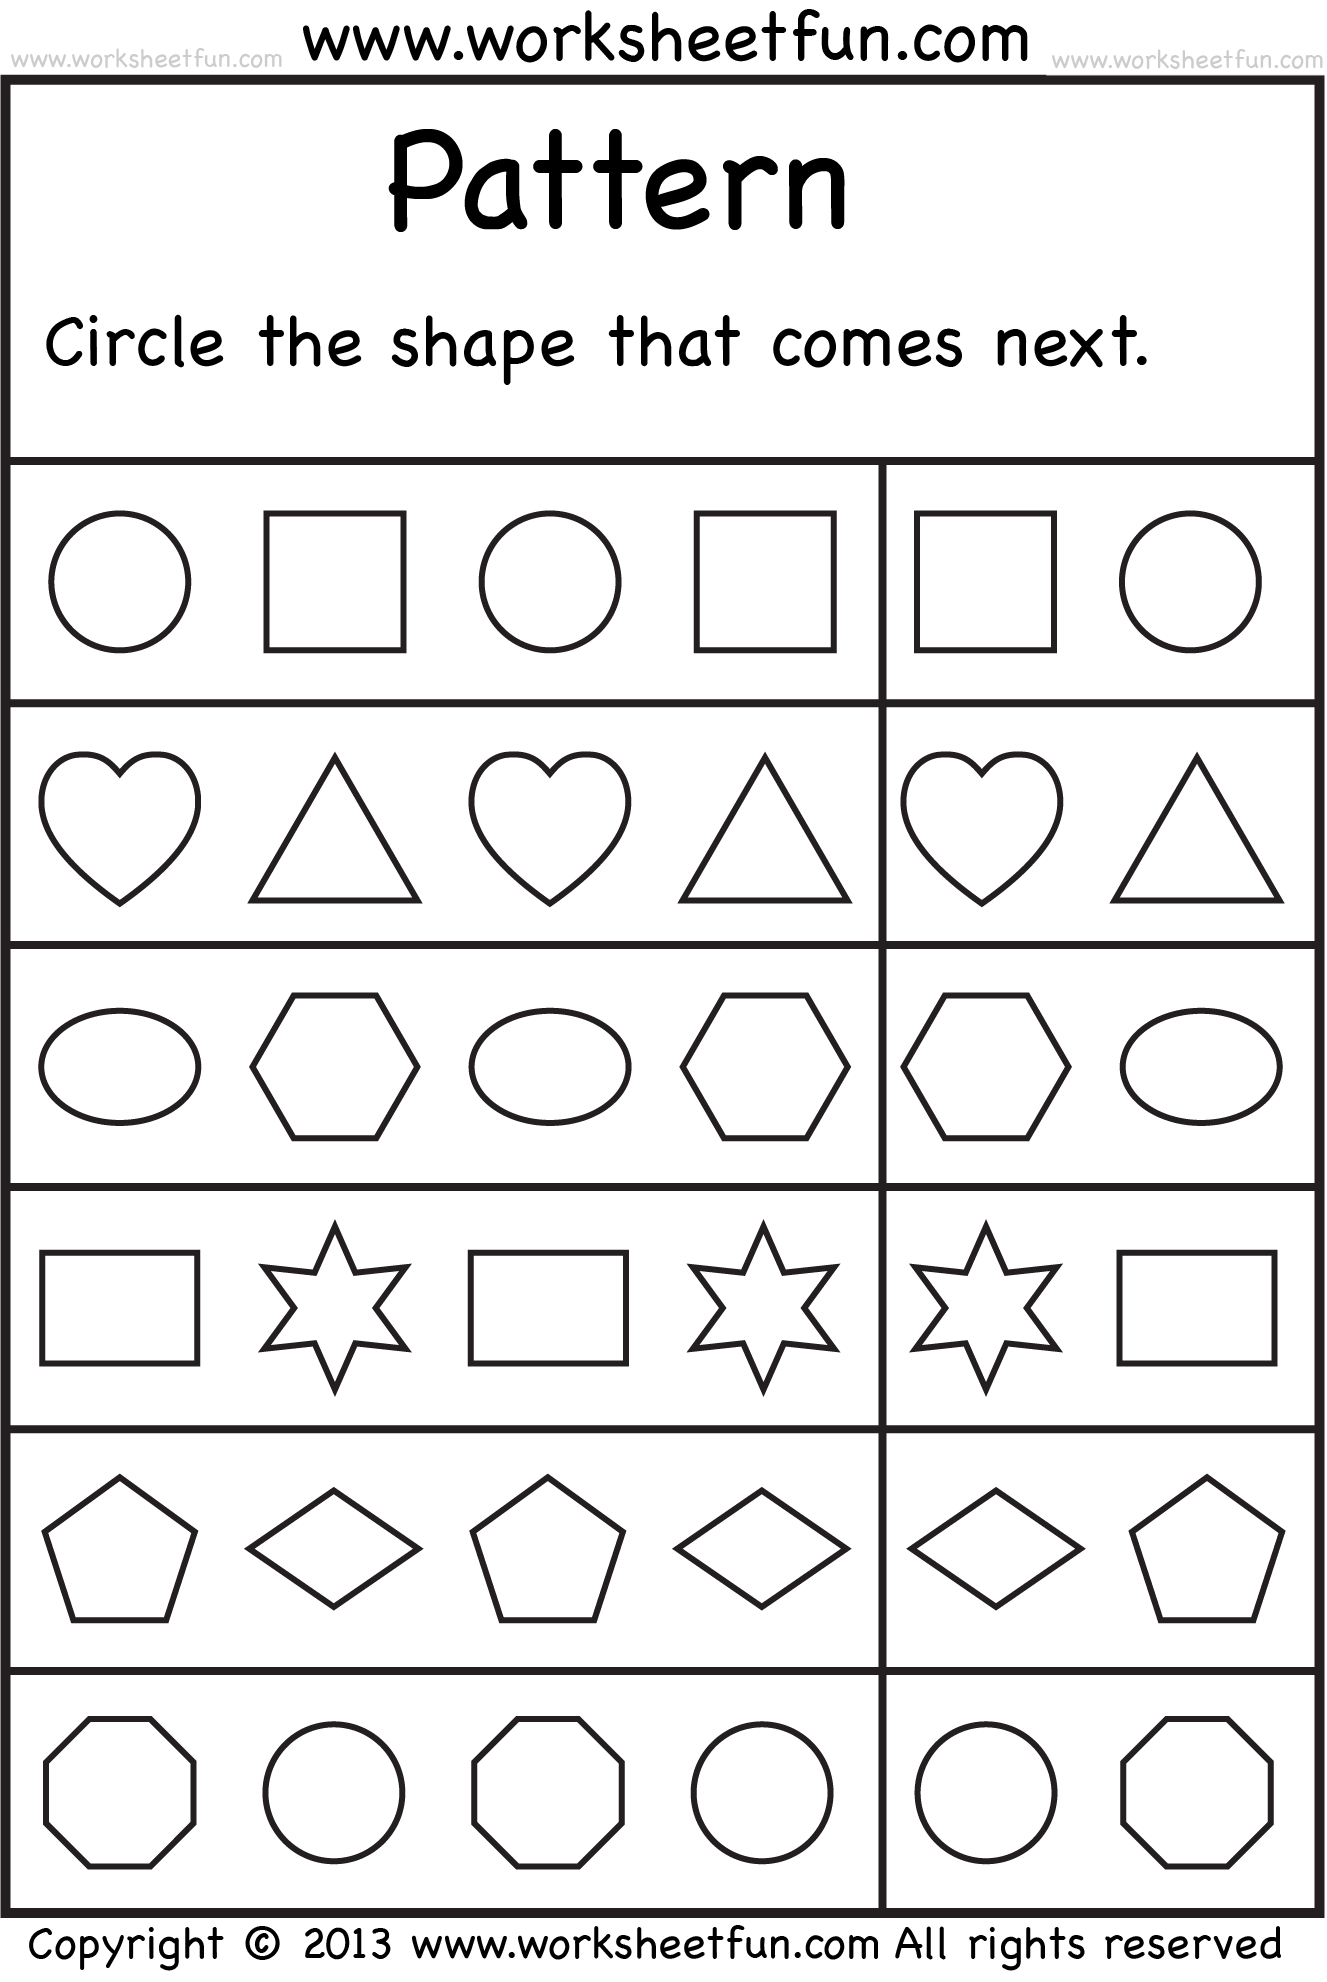 Proatmealus  Outstanding  Images About School Worksheets On Pinterest  Number Words  With Gorgeous  Images About School Worksheets On Pinterest  Number Words Alphabet Worksheets And Free Printable Kindergarten Worksheets With Easy On The Eye Identifying Sentence Fragments Worksheets Also Worksheets For Subject And Predicate In Addition Antonym Worksheets St Grade And Number Line With Fractions Worksheets As Well As Exploring Science  Worksheets Additionally Subtraction Worksheets Word Problems From Pinterestcom With Proatmealus  Gorgeous  Images About School Worksheets On Pinterest  Number Words  With Easy On The Eye  Images About School Worksheets On Pinterest  Number Words Alphabet Worksheets And Free Printable Kindergarten Worksheets And Outstanding Identifying Sentence Fragments Worksheets Also Worksheets For Subject And Predicate In Addition Antonym Worksheets St Grade From Pinterestcom